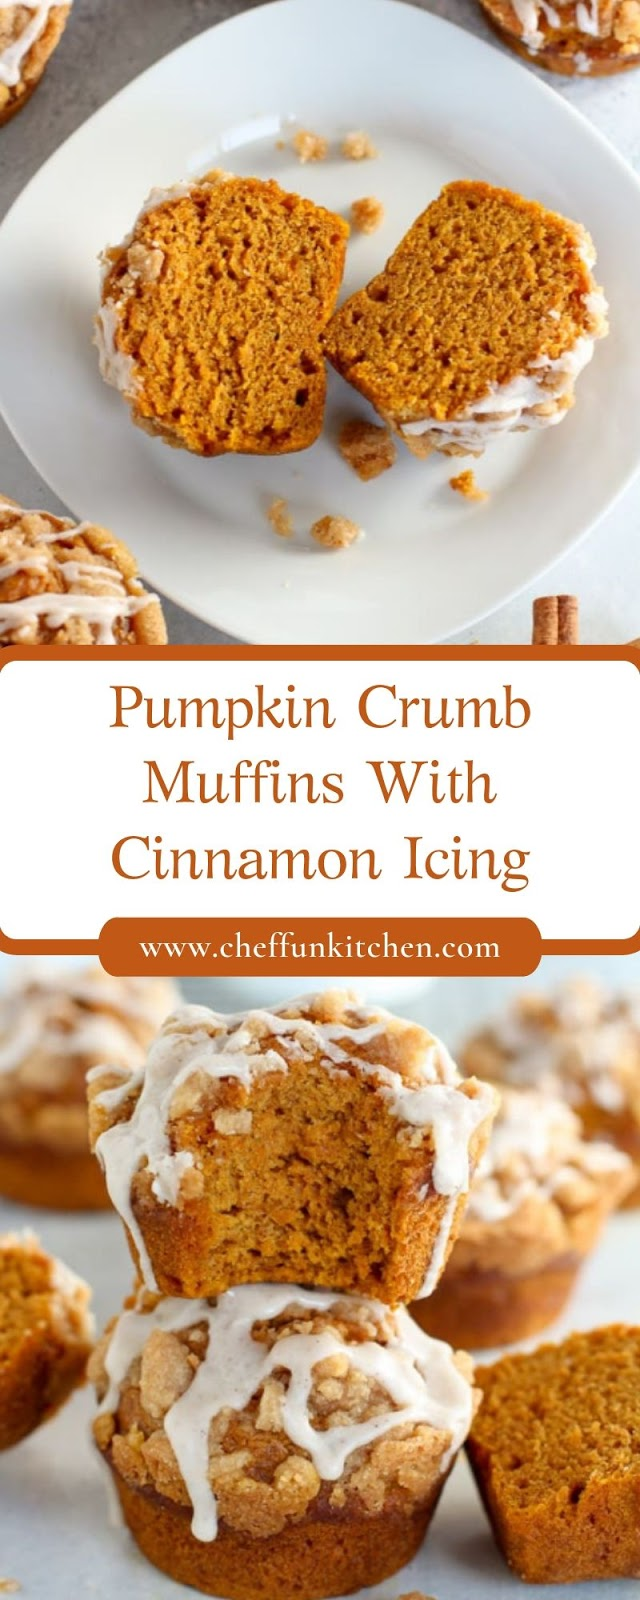 Pumpkin Crumb Muffins With Cinnamon Icing